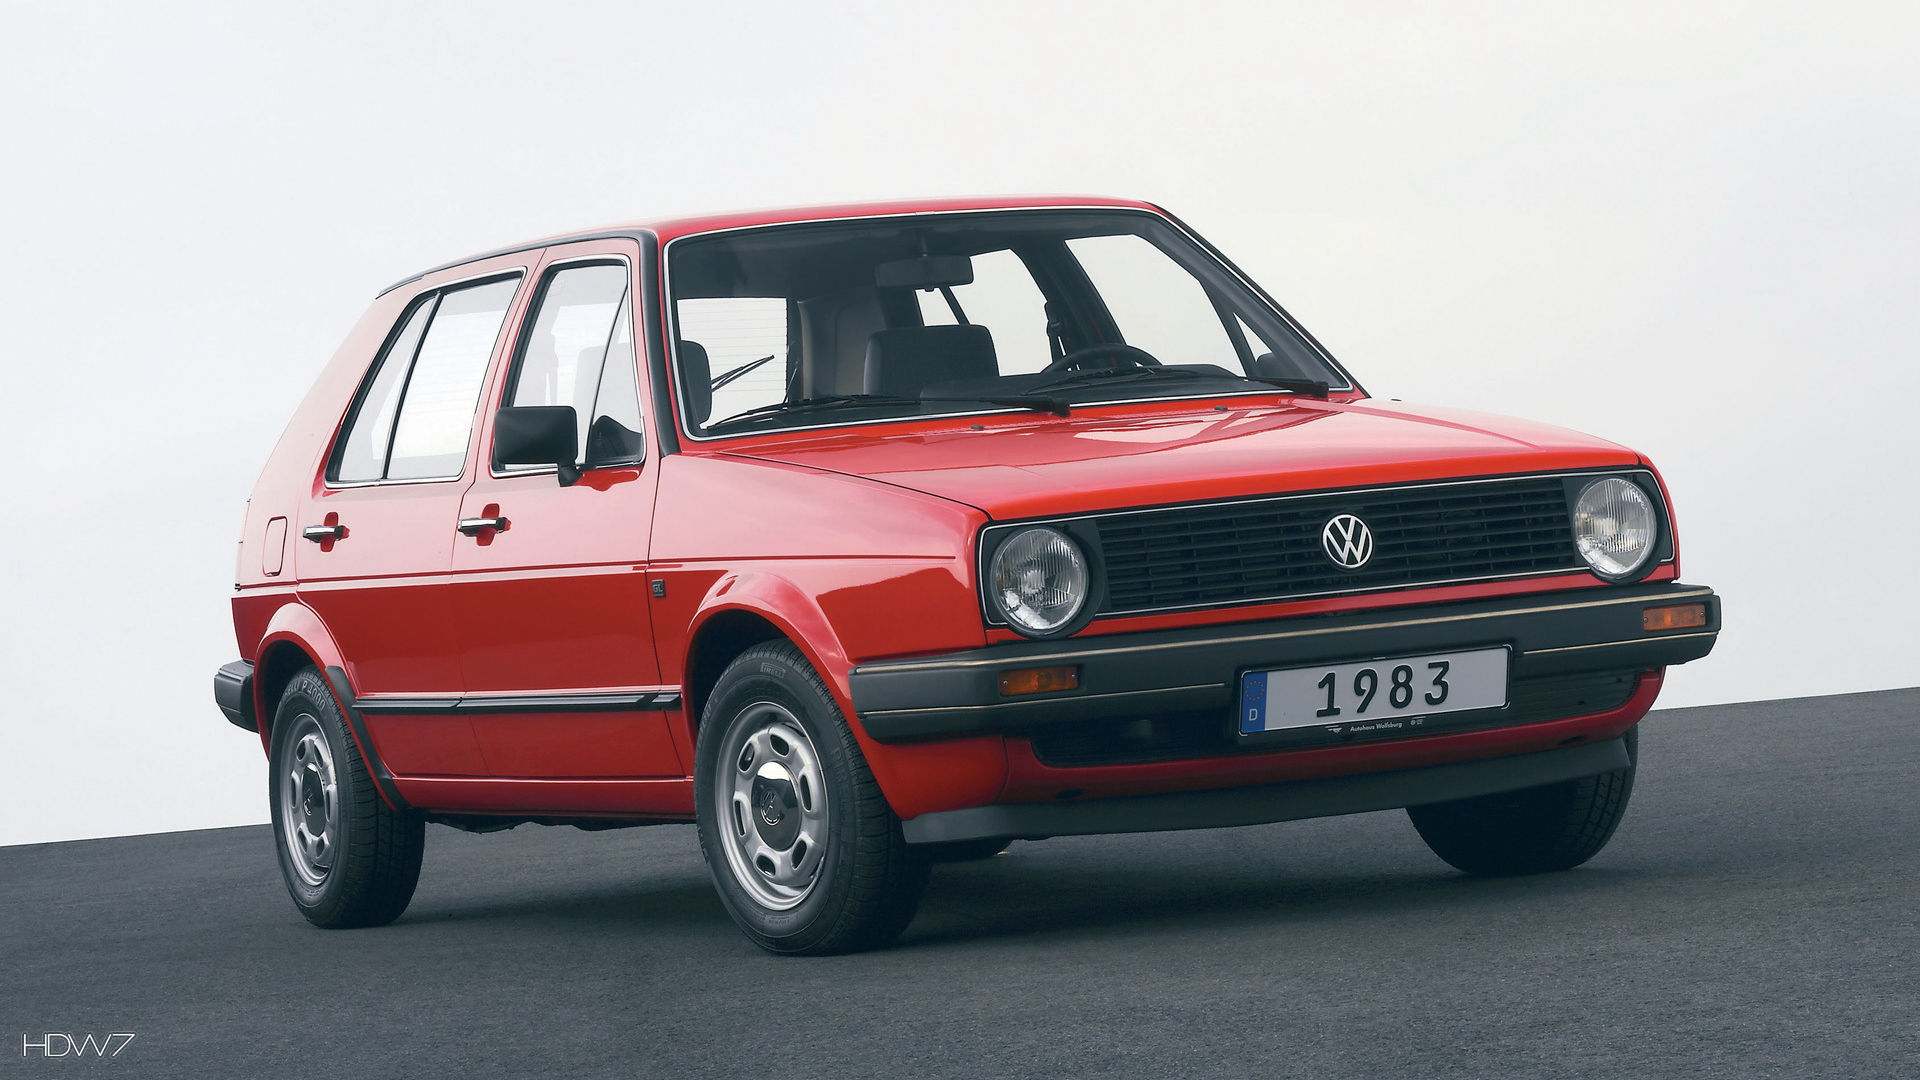 Volkswagen Golf 2 1983 1991 Car Hd Wallpaper